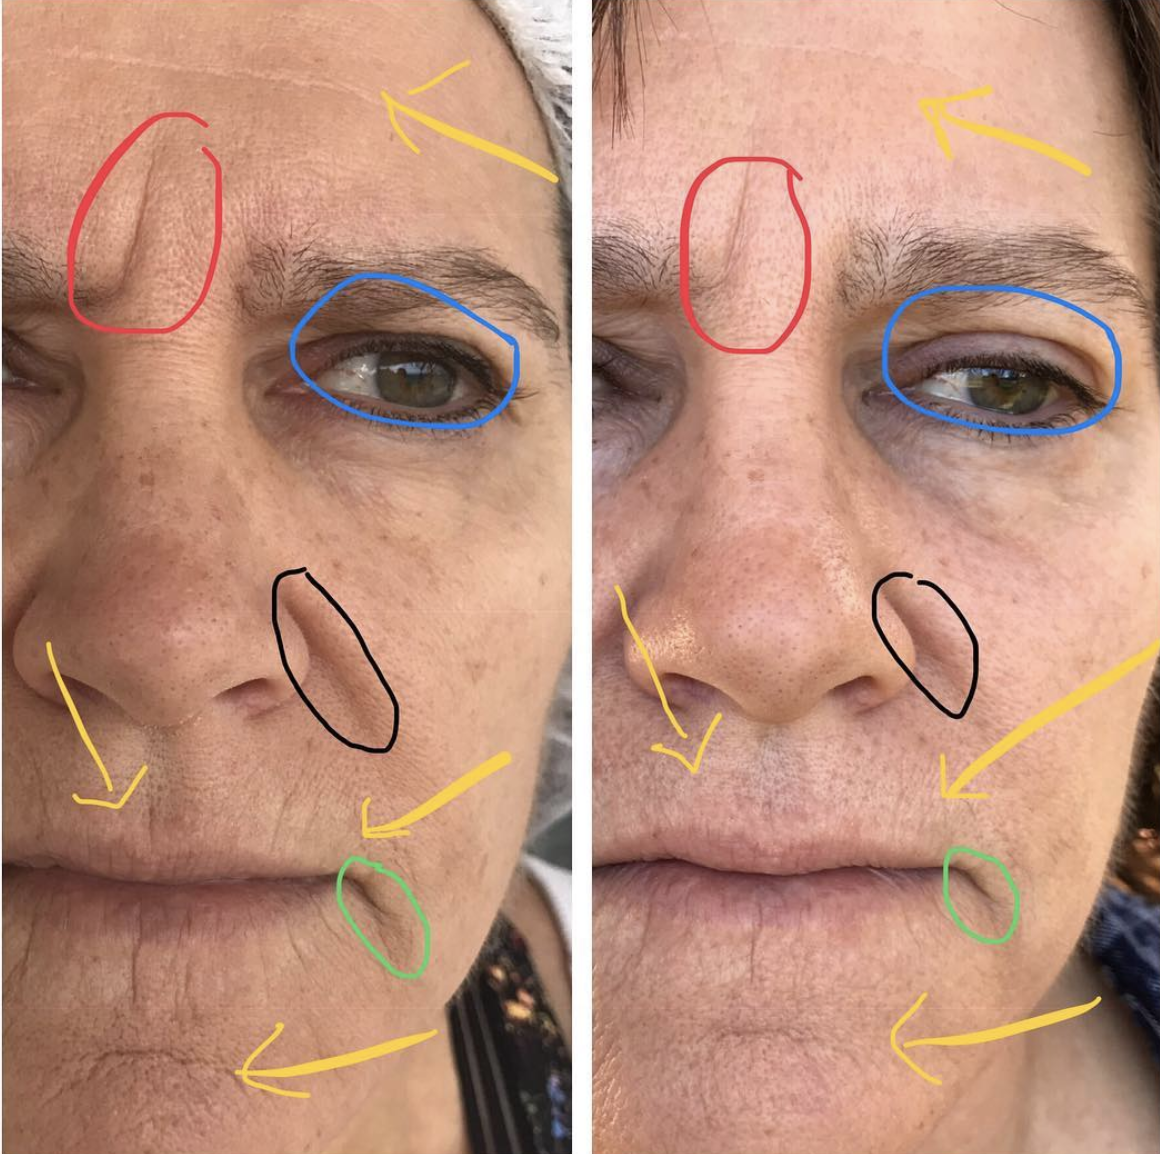 Full face lift, one treatment, 2 months healed.  Overall subtle lift and brightening. Deeper folds and wrinkles are shorter and more shallow. Reduction in fine lines and less sagging over the eye.